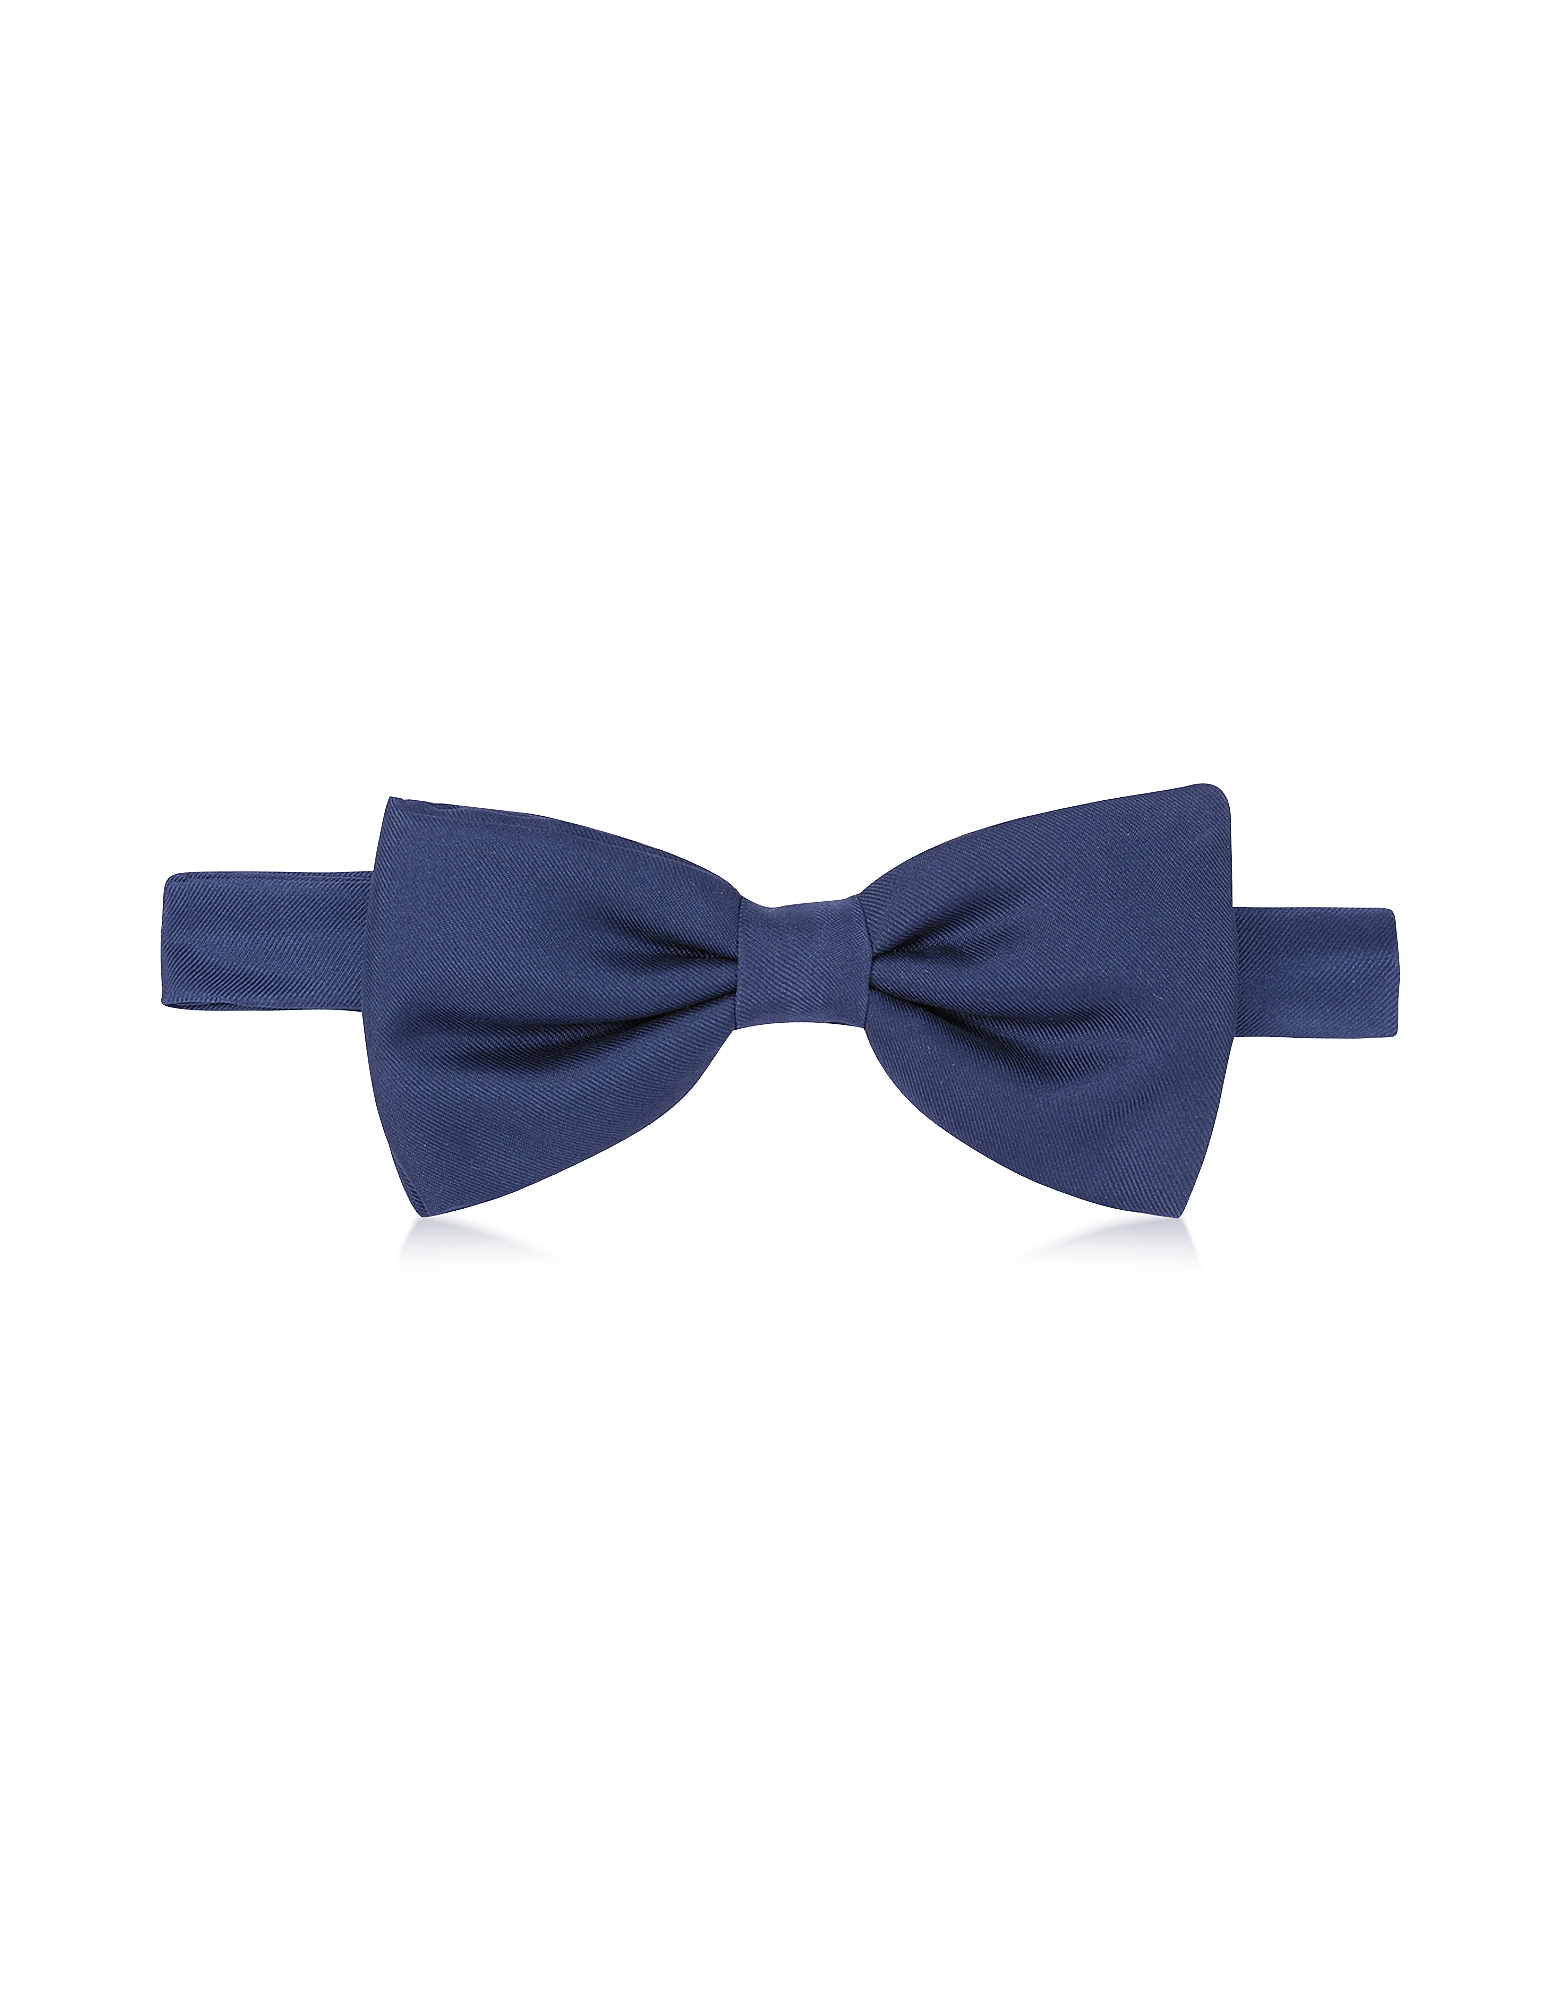 Forzieri Bowties and Cummerbunds, Solid Pre-Tied Silk Bowtie